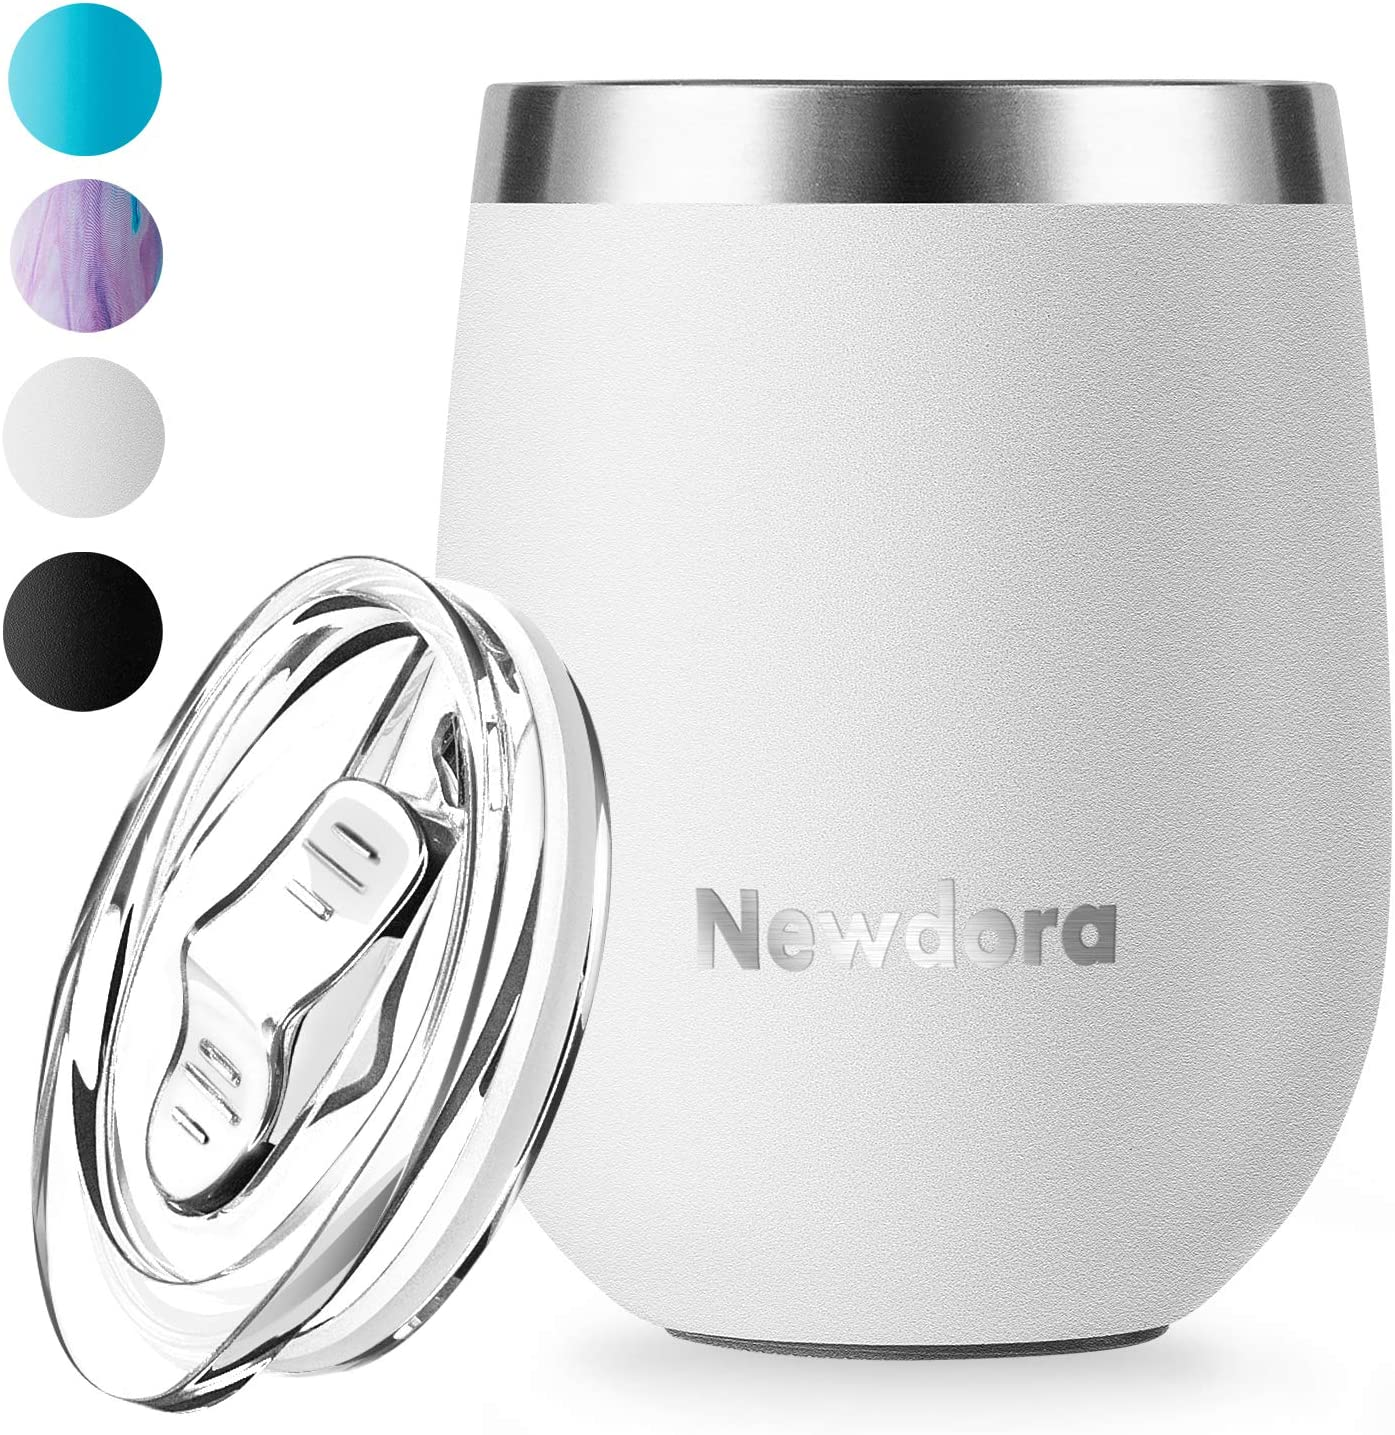 Newdora Wine Tumbler with Lid, Stainless Steel Vacuum Insulated Double Wall Travel Tumbler, Durable Insulated Coffee Mug, Thermal Cup with Splash Proof Sliding Lid, White